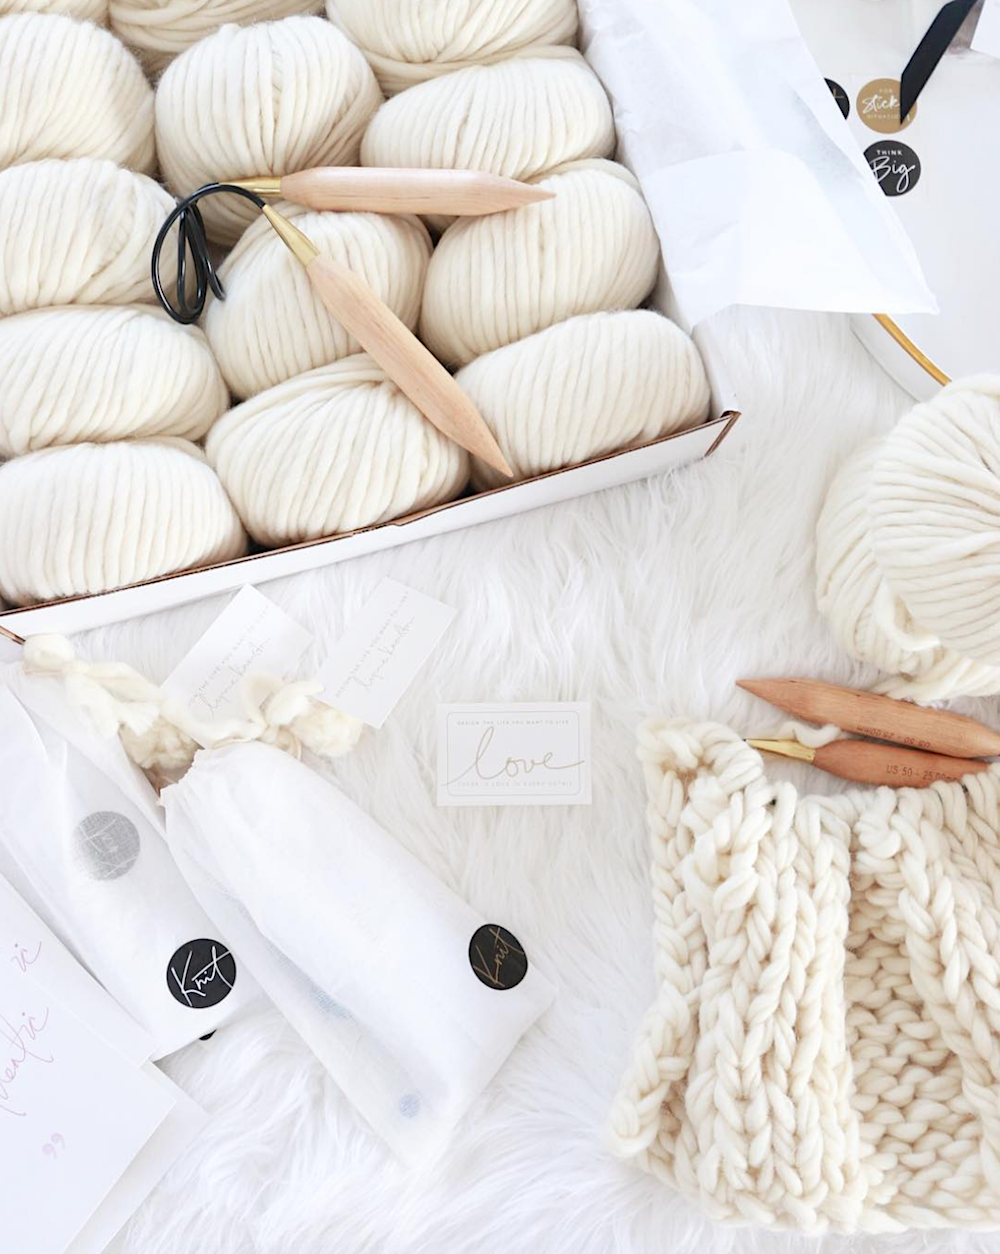 Make your own chunky knit blanket. These DIY kits make it